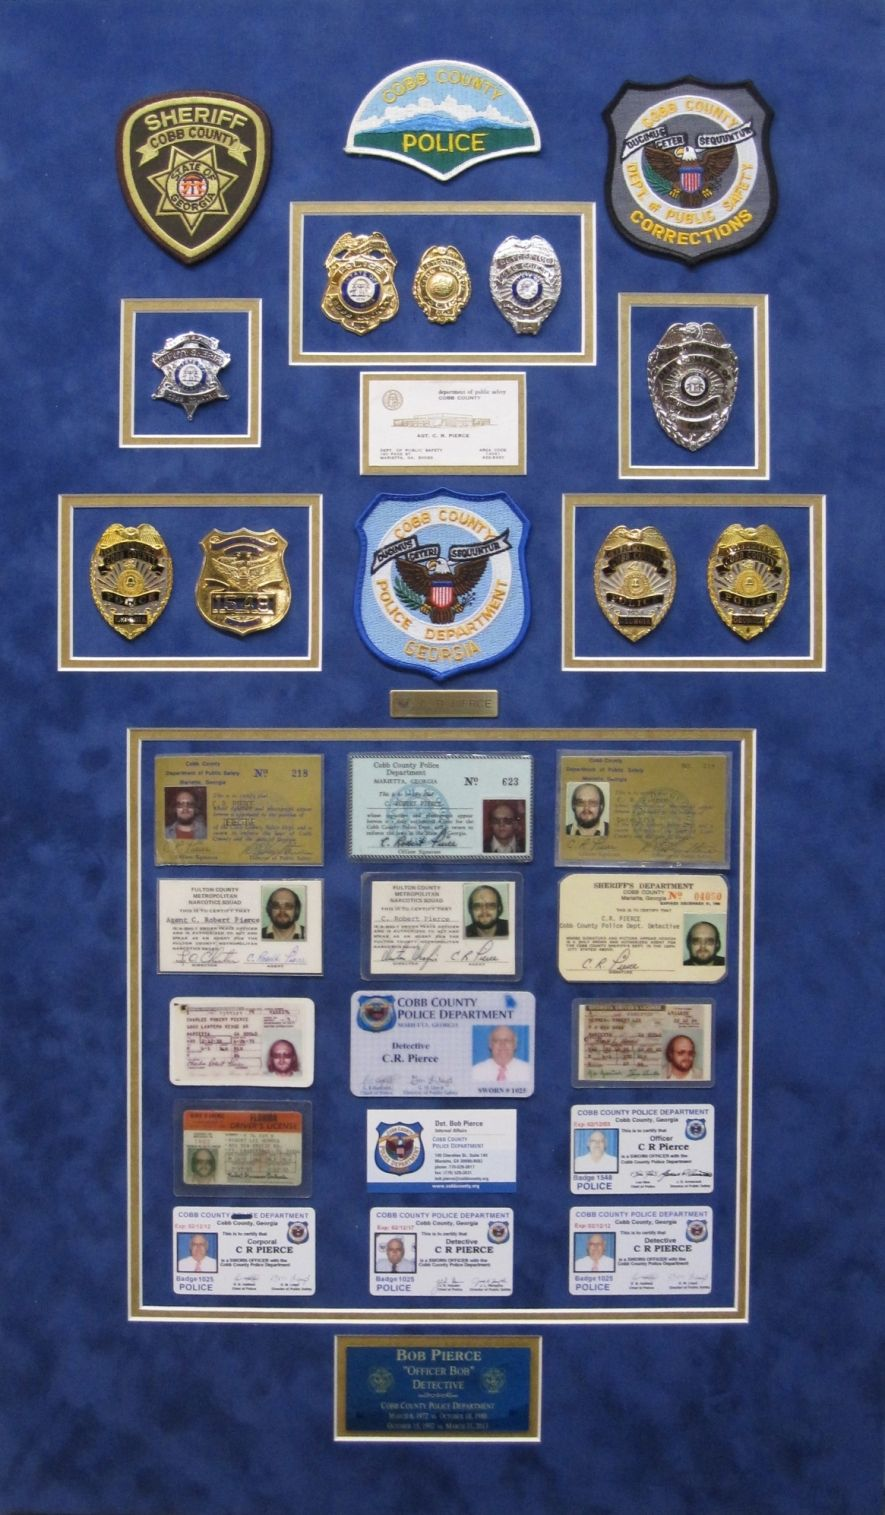 Cobb County Police Department 2013 Retirement Gift Shadow Box